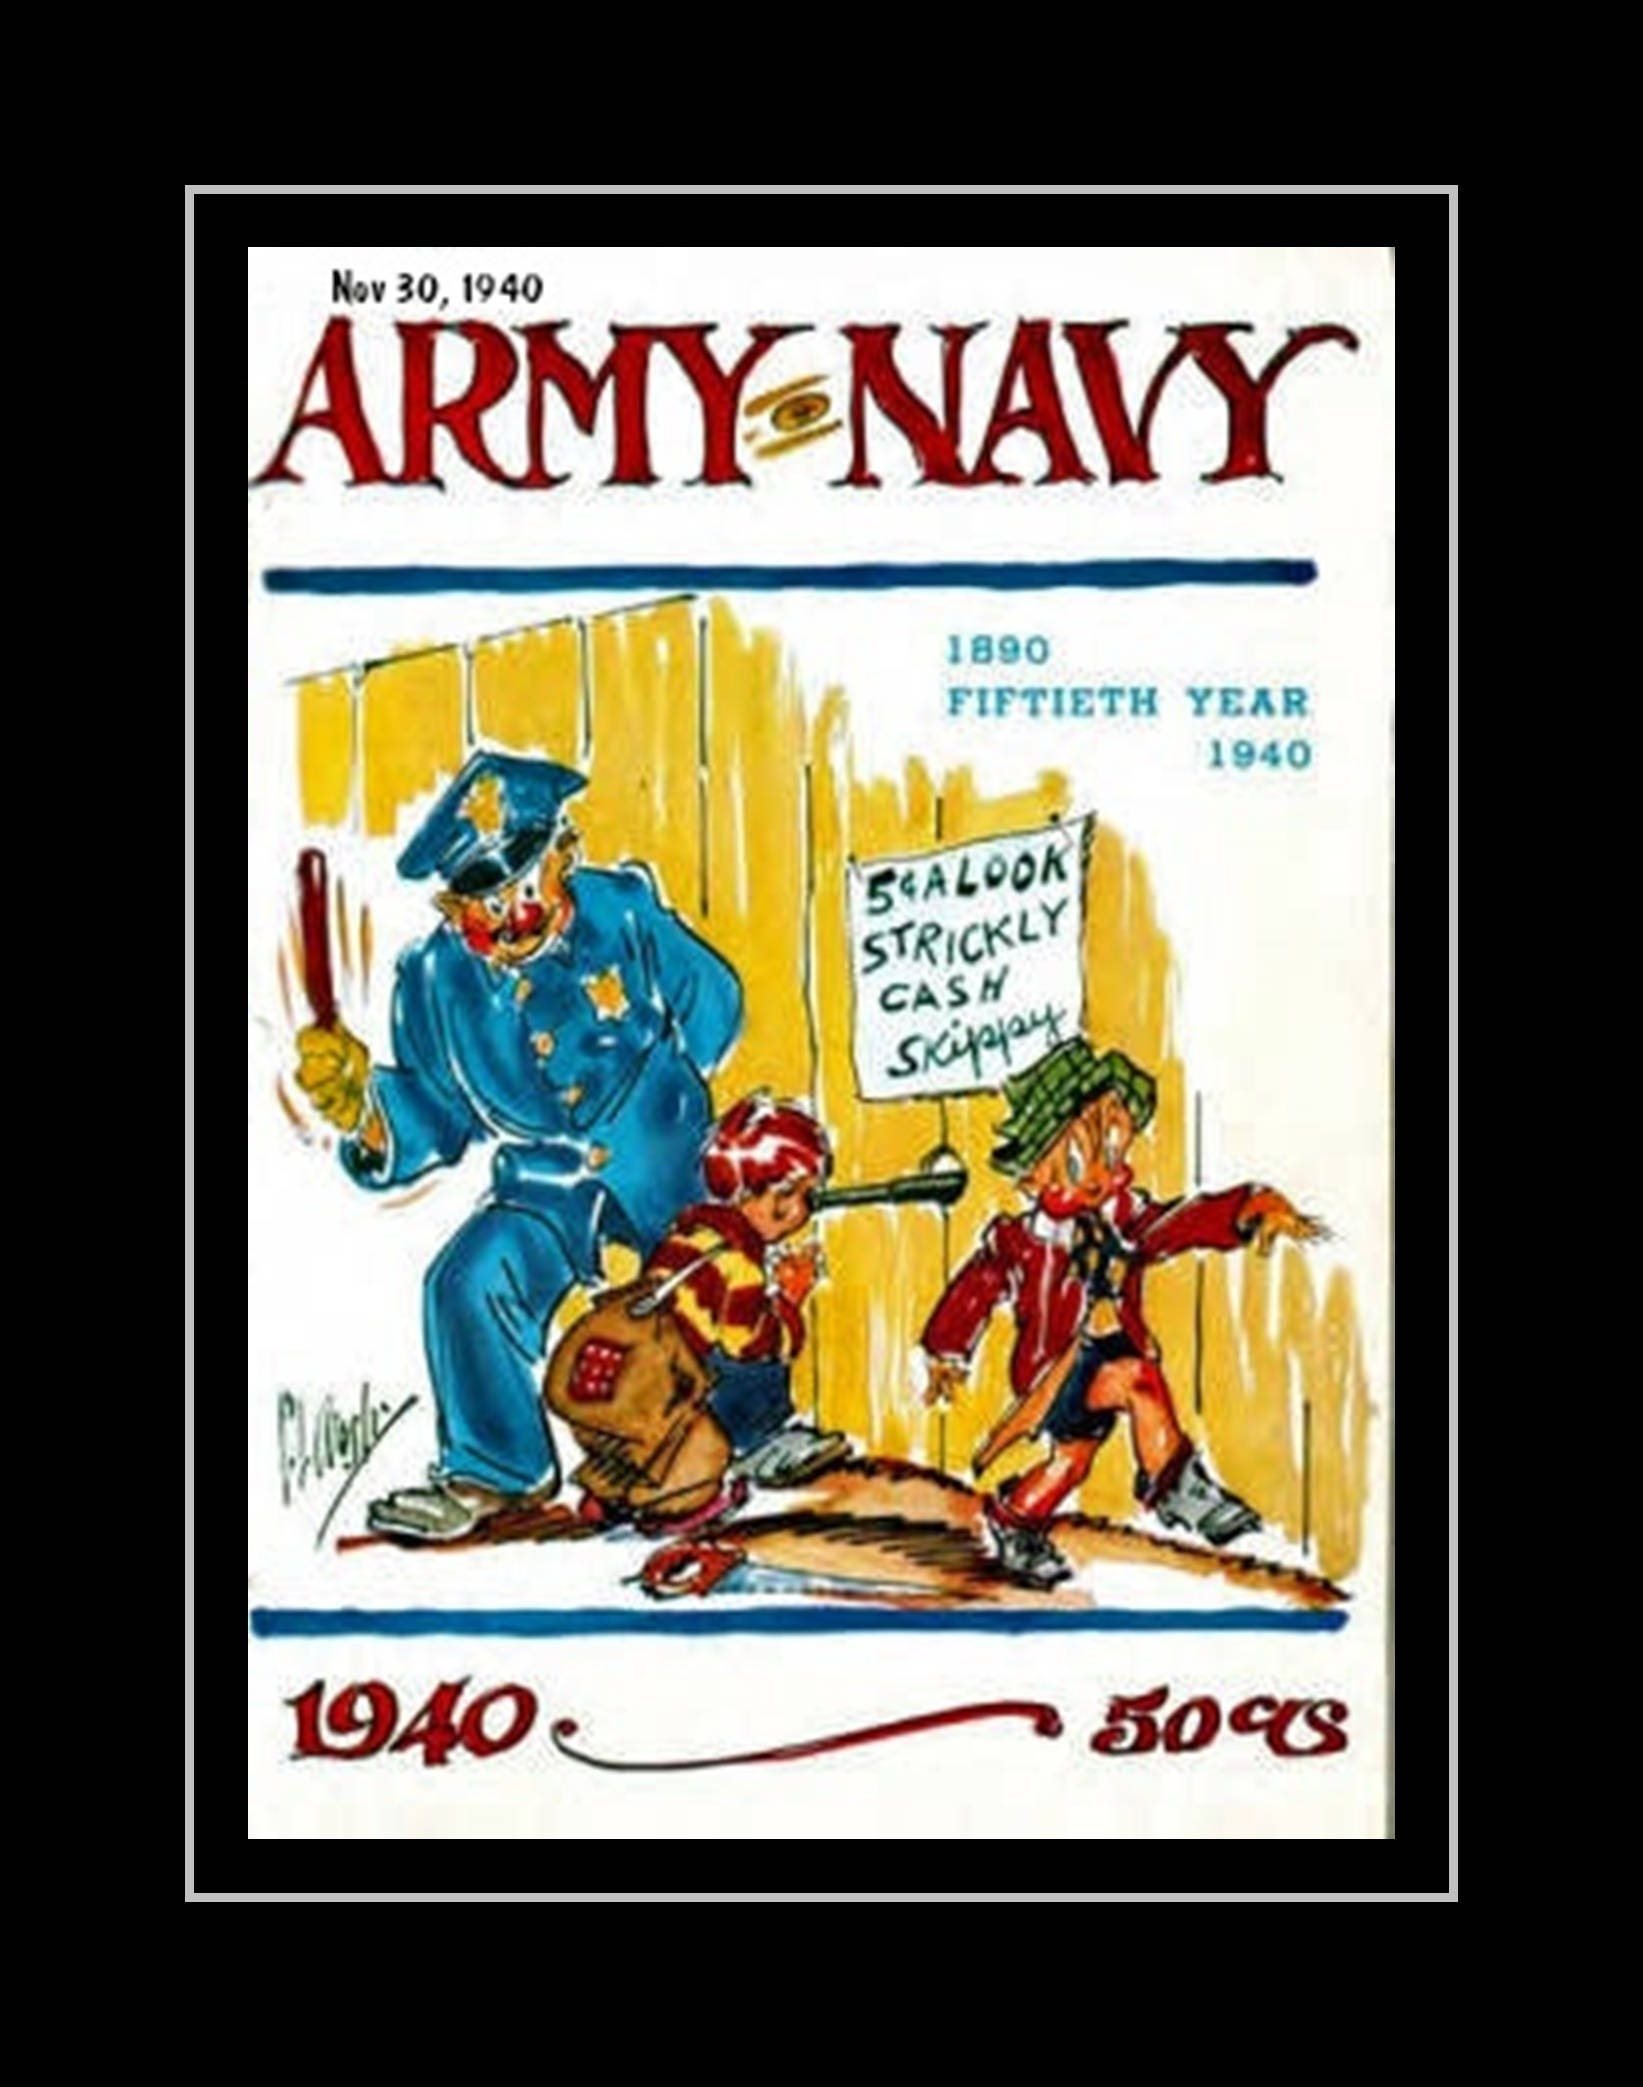 Vintage 1940s Army Navy Football Poster Military Wall Decor